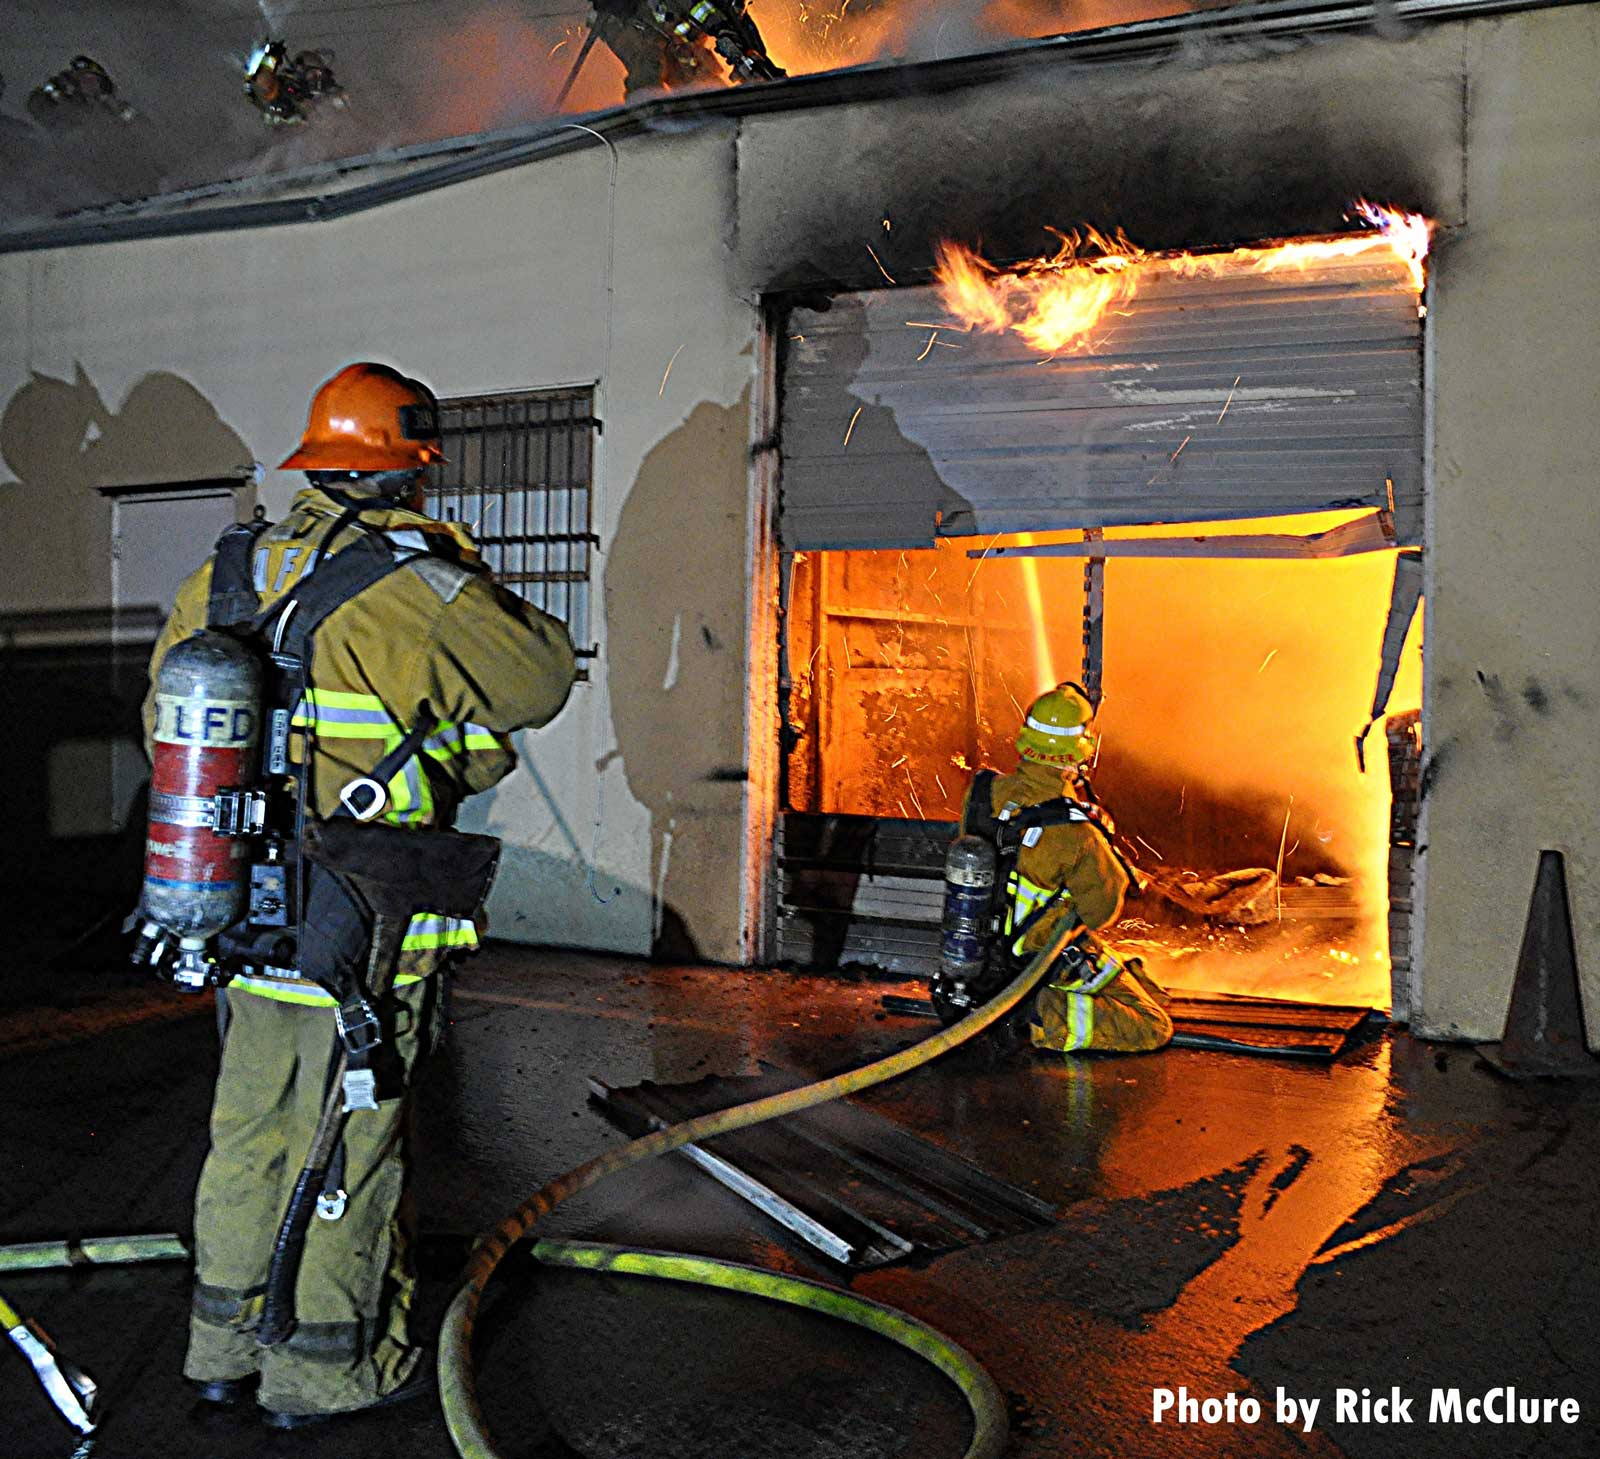 A kneeling LAFD firefighter with a hoseline sprays water on flames through a cut roll-down door